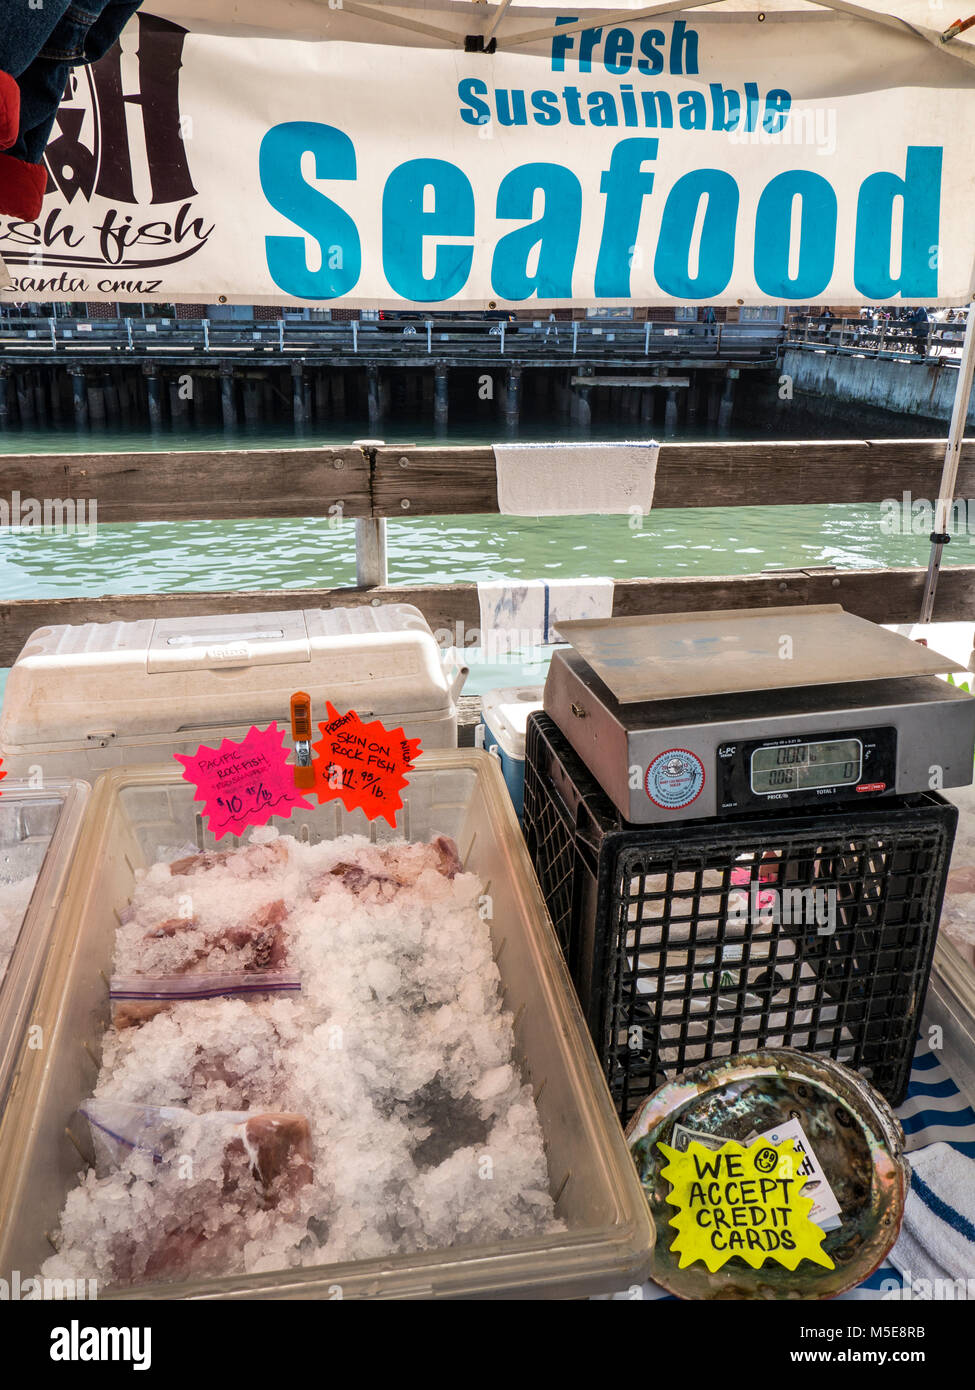 FRESH SUSTAINABLE SEAFOOD coastal Farmers Market with fresh local sustainable fish stall Ferry Building Embarcadero - Stock Image